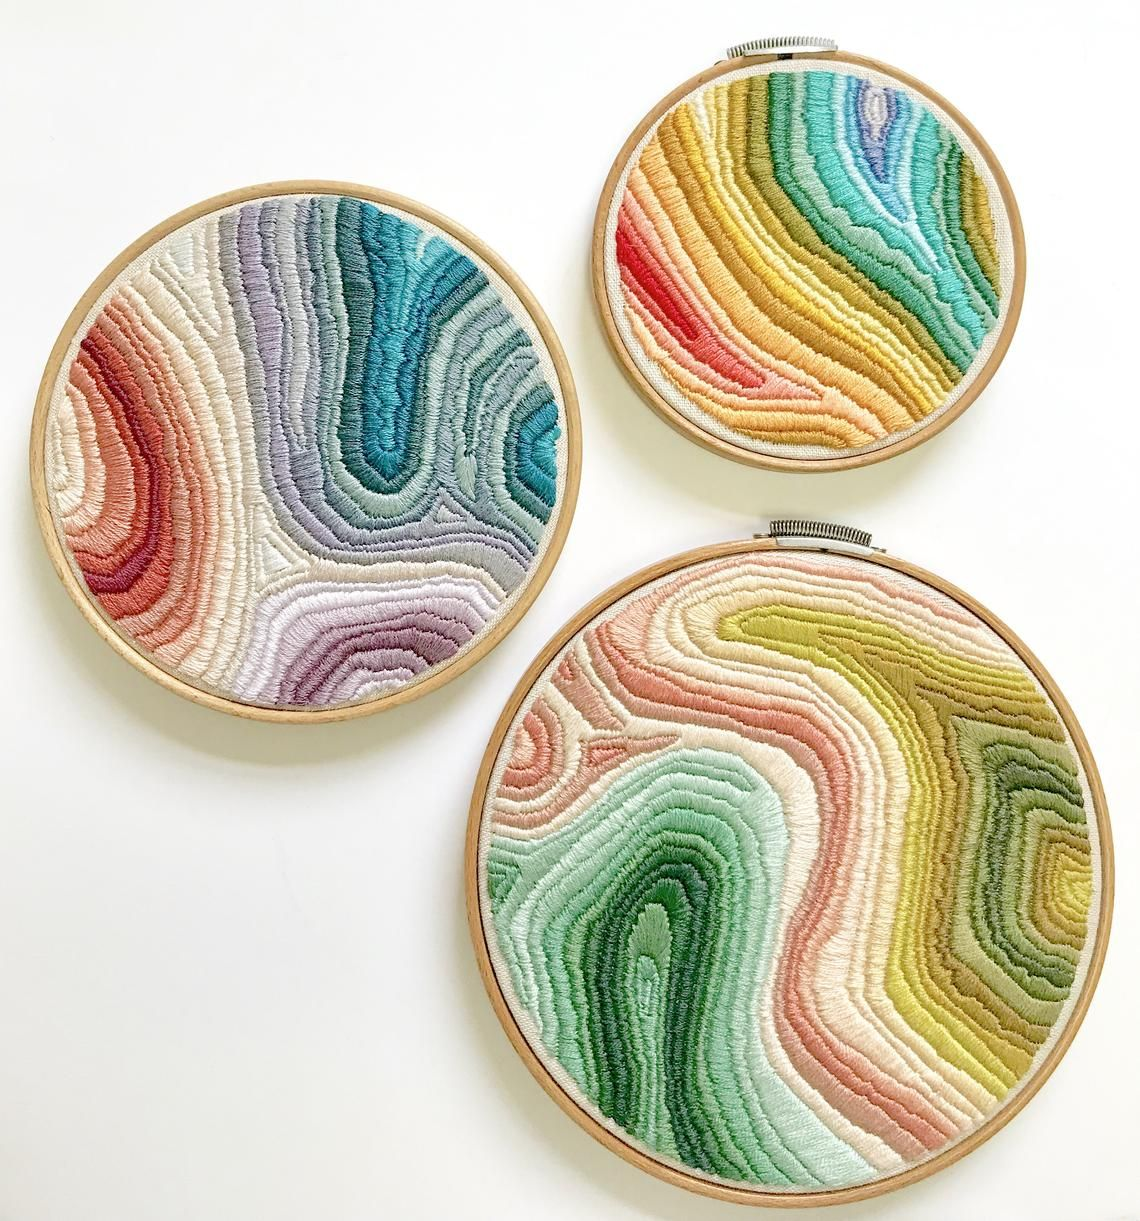 Colorful Embroidery Pattern. Digital Download PDF. Marbled Art. DIY Craft Project. Rainbow Art. Easy Embroidery Pattern. Boho Decor #embroiderypatternsbeginner